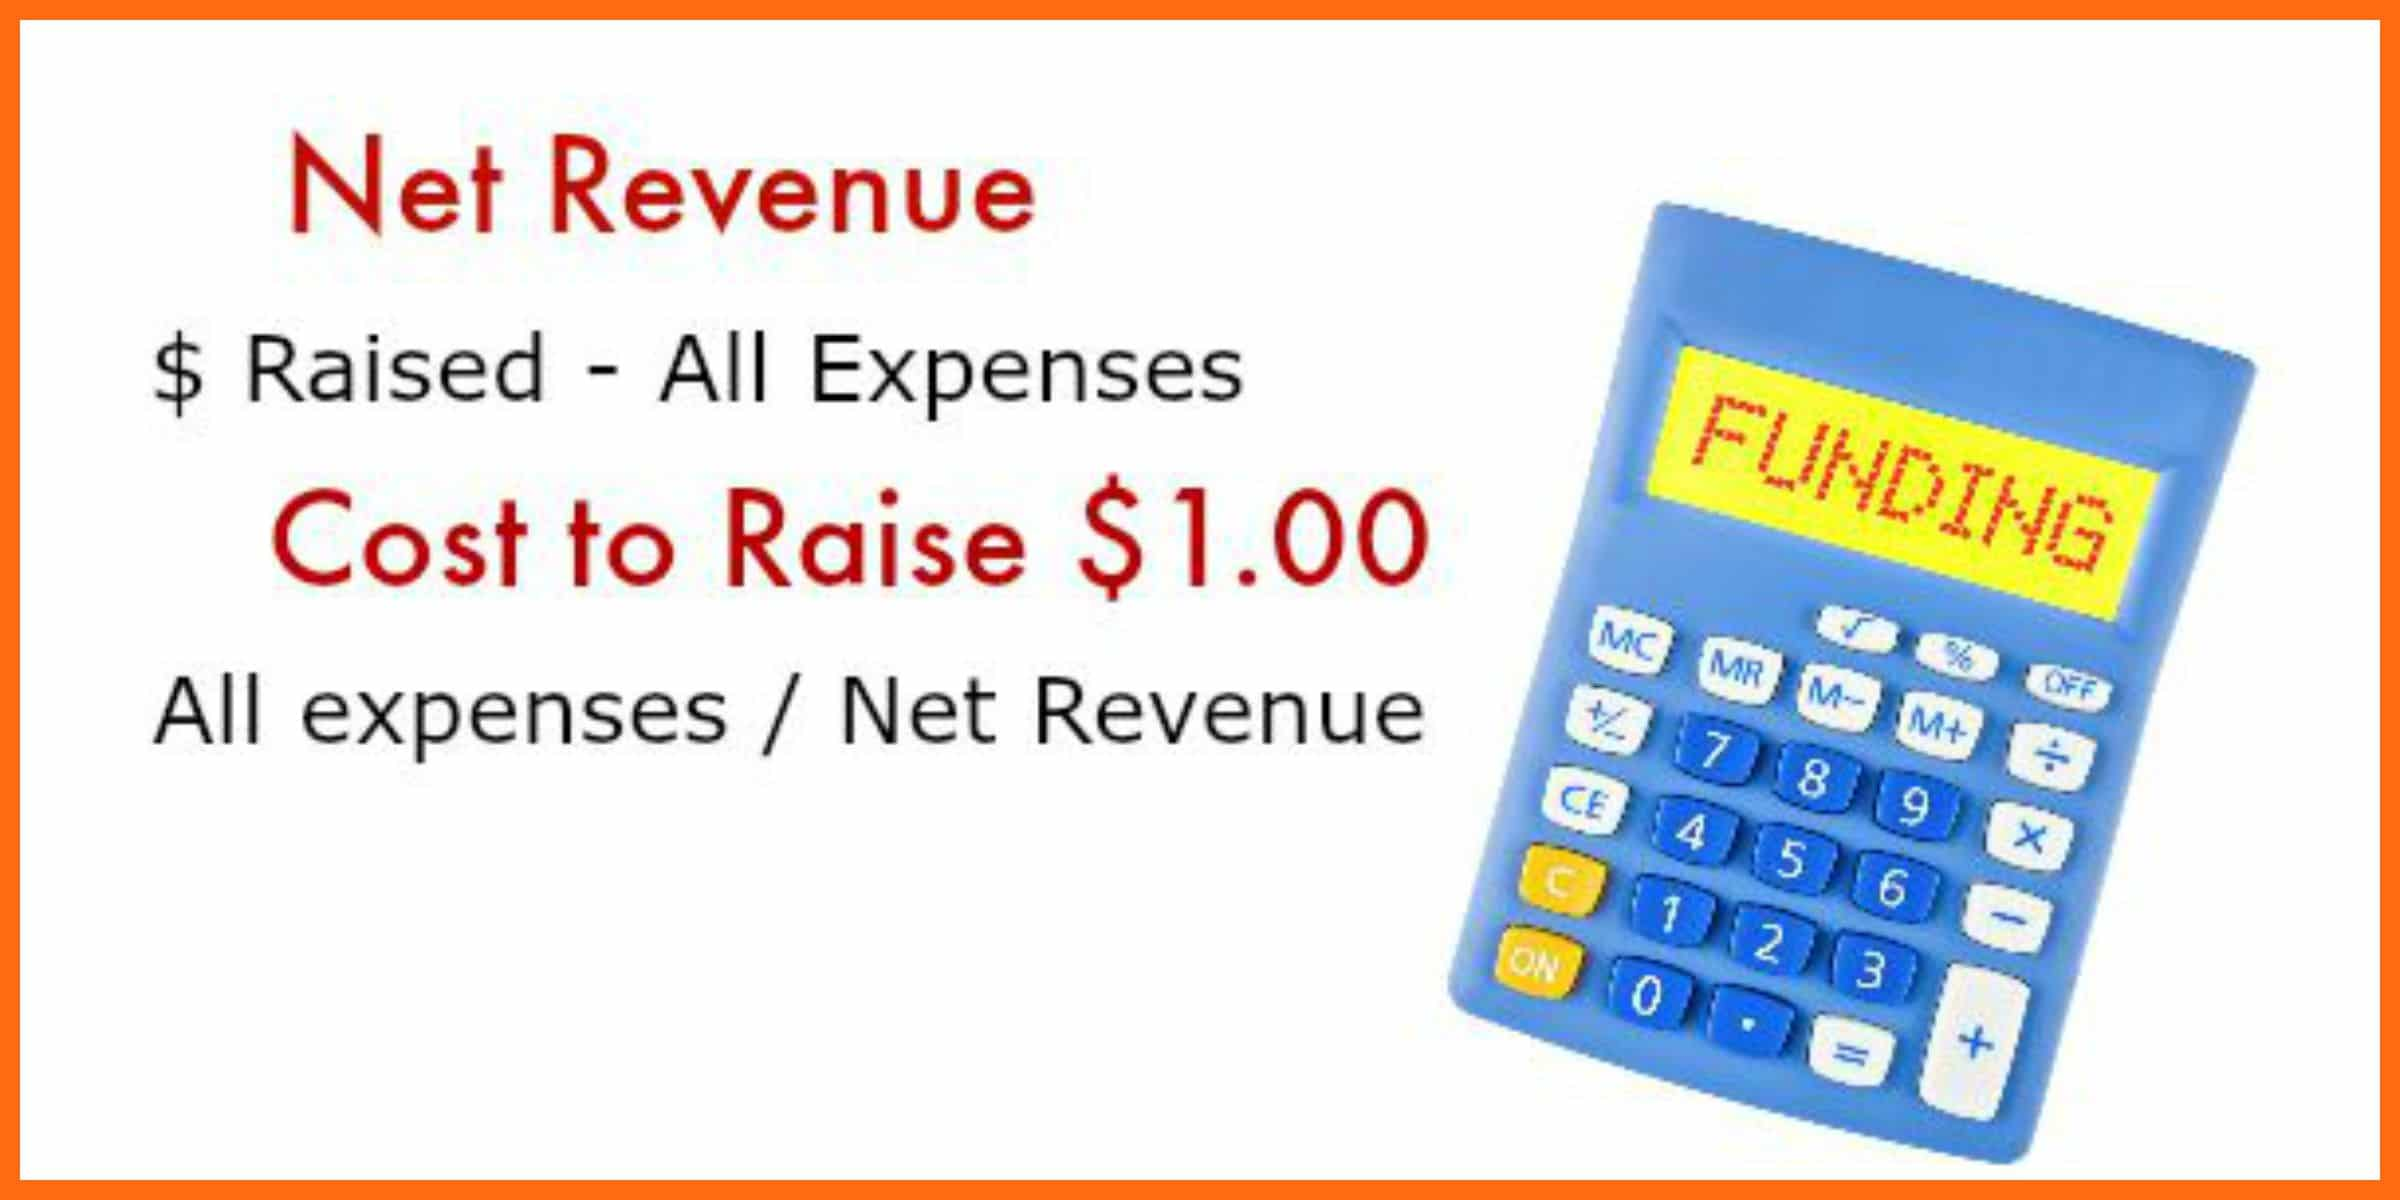 Fundraising Calculator- Calculate the Cost of Fundraising for Success | FunPastaFundraising.com